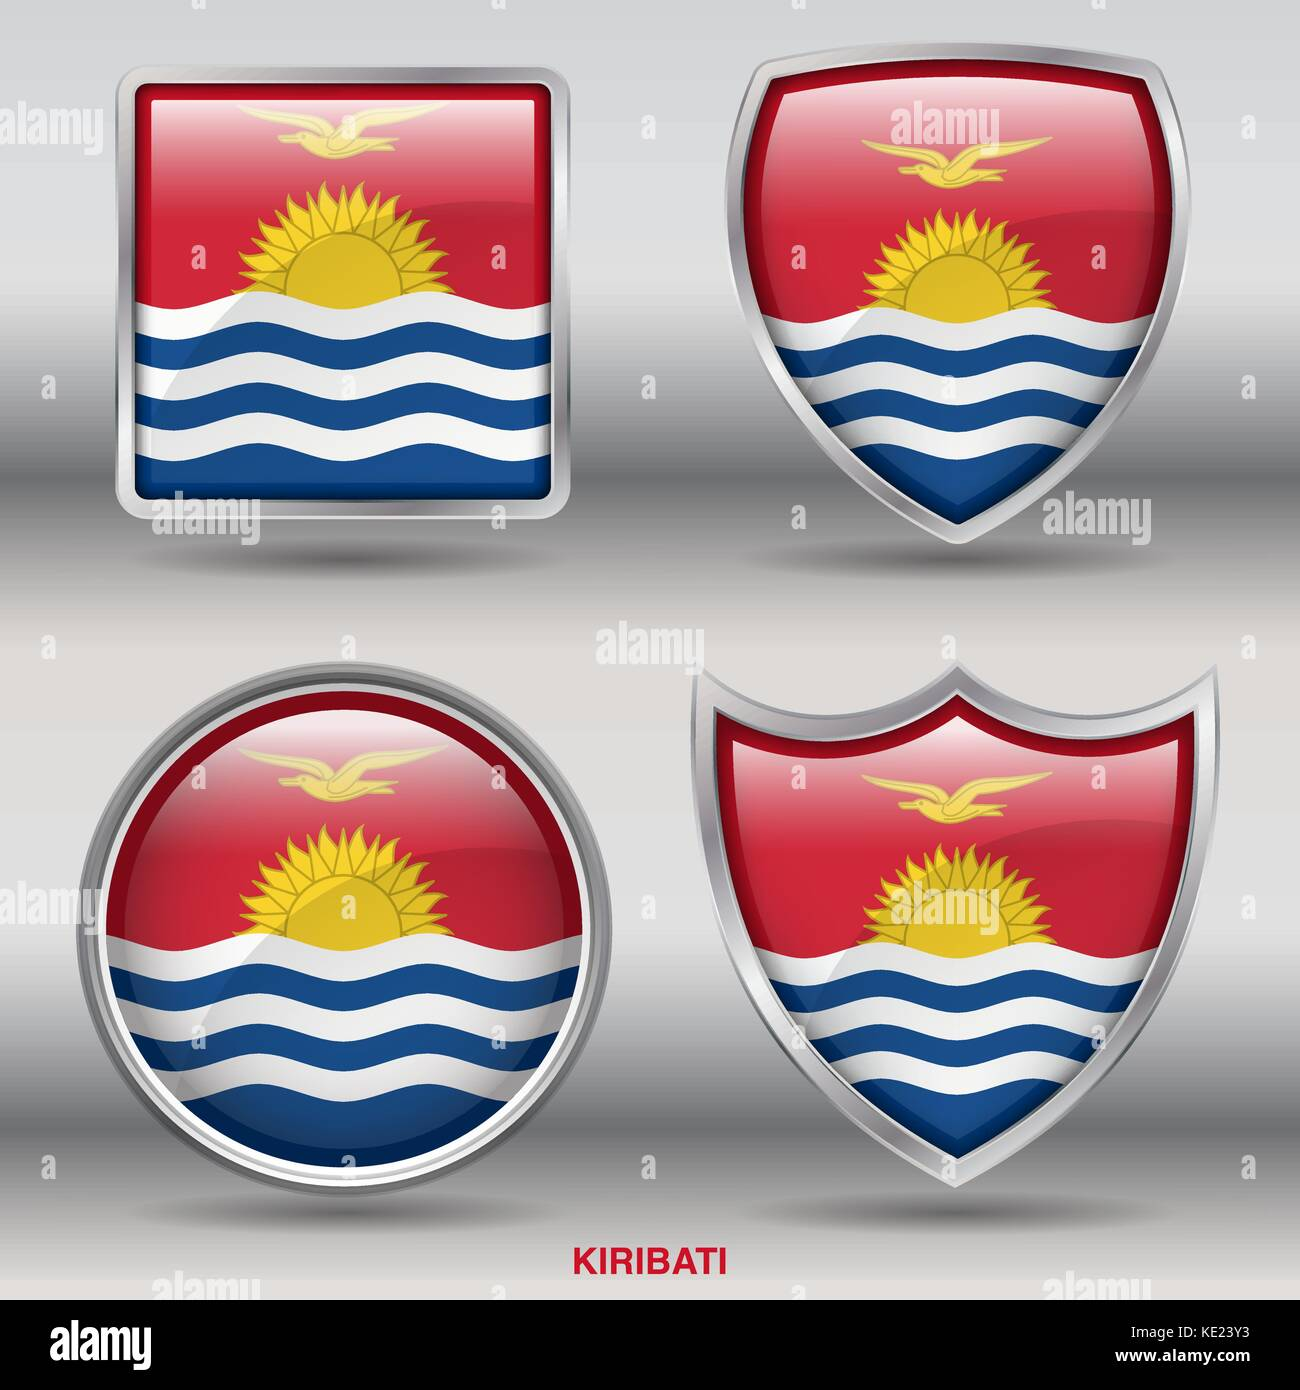 Kiribati Flag - 4 shapes Flags States Country in the World with clipping path - Stock Image